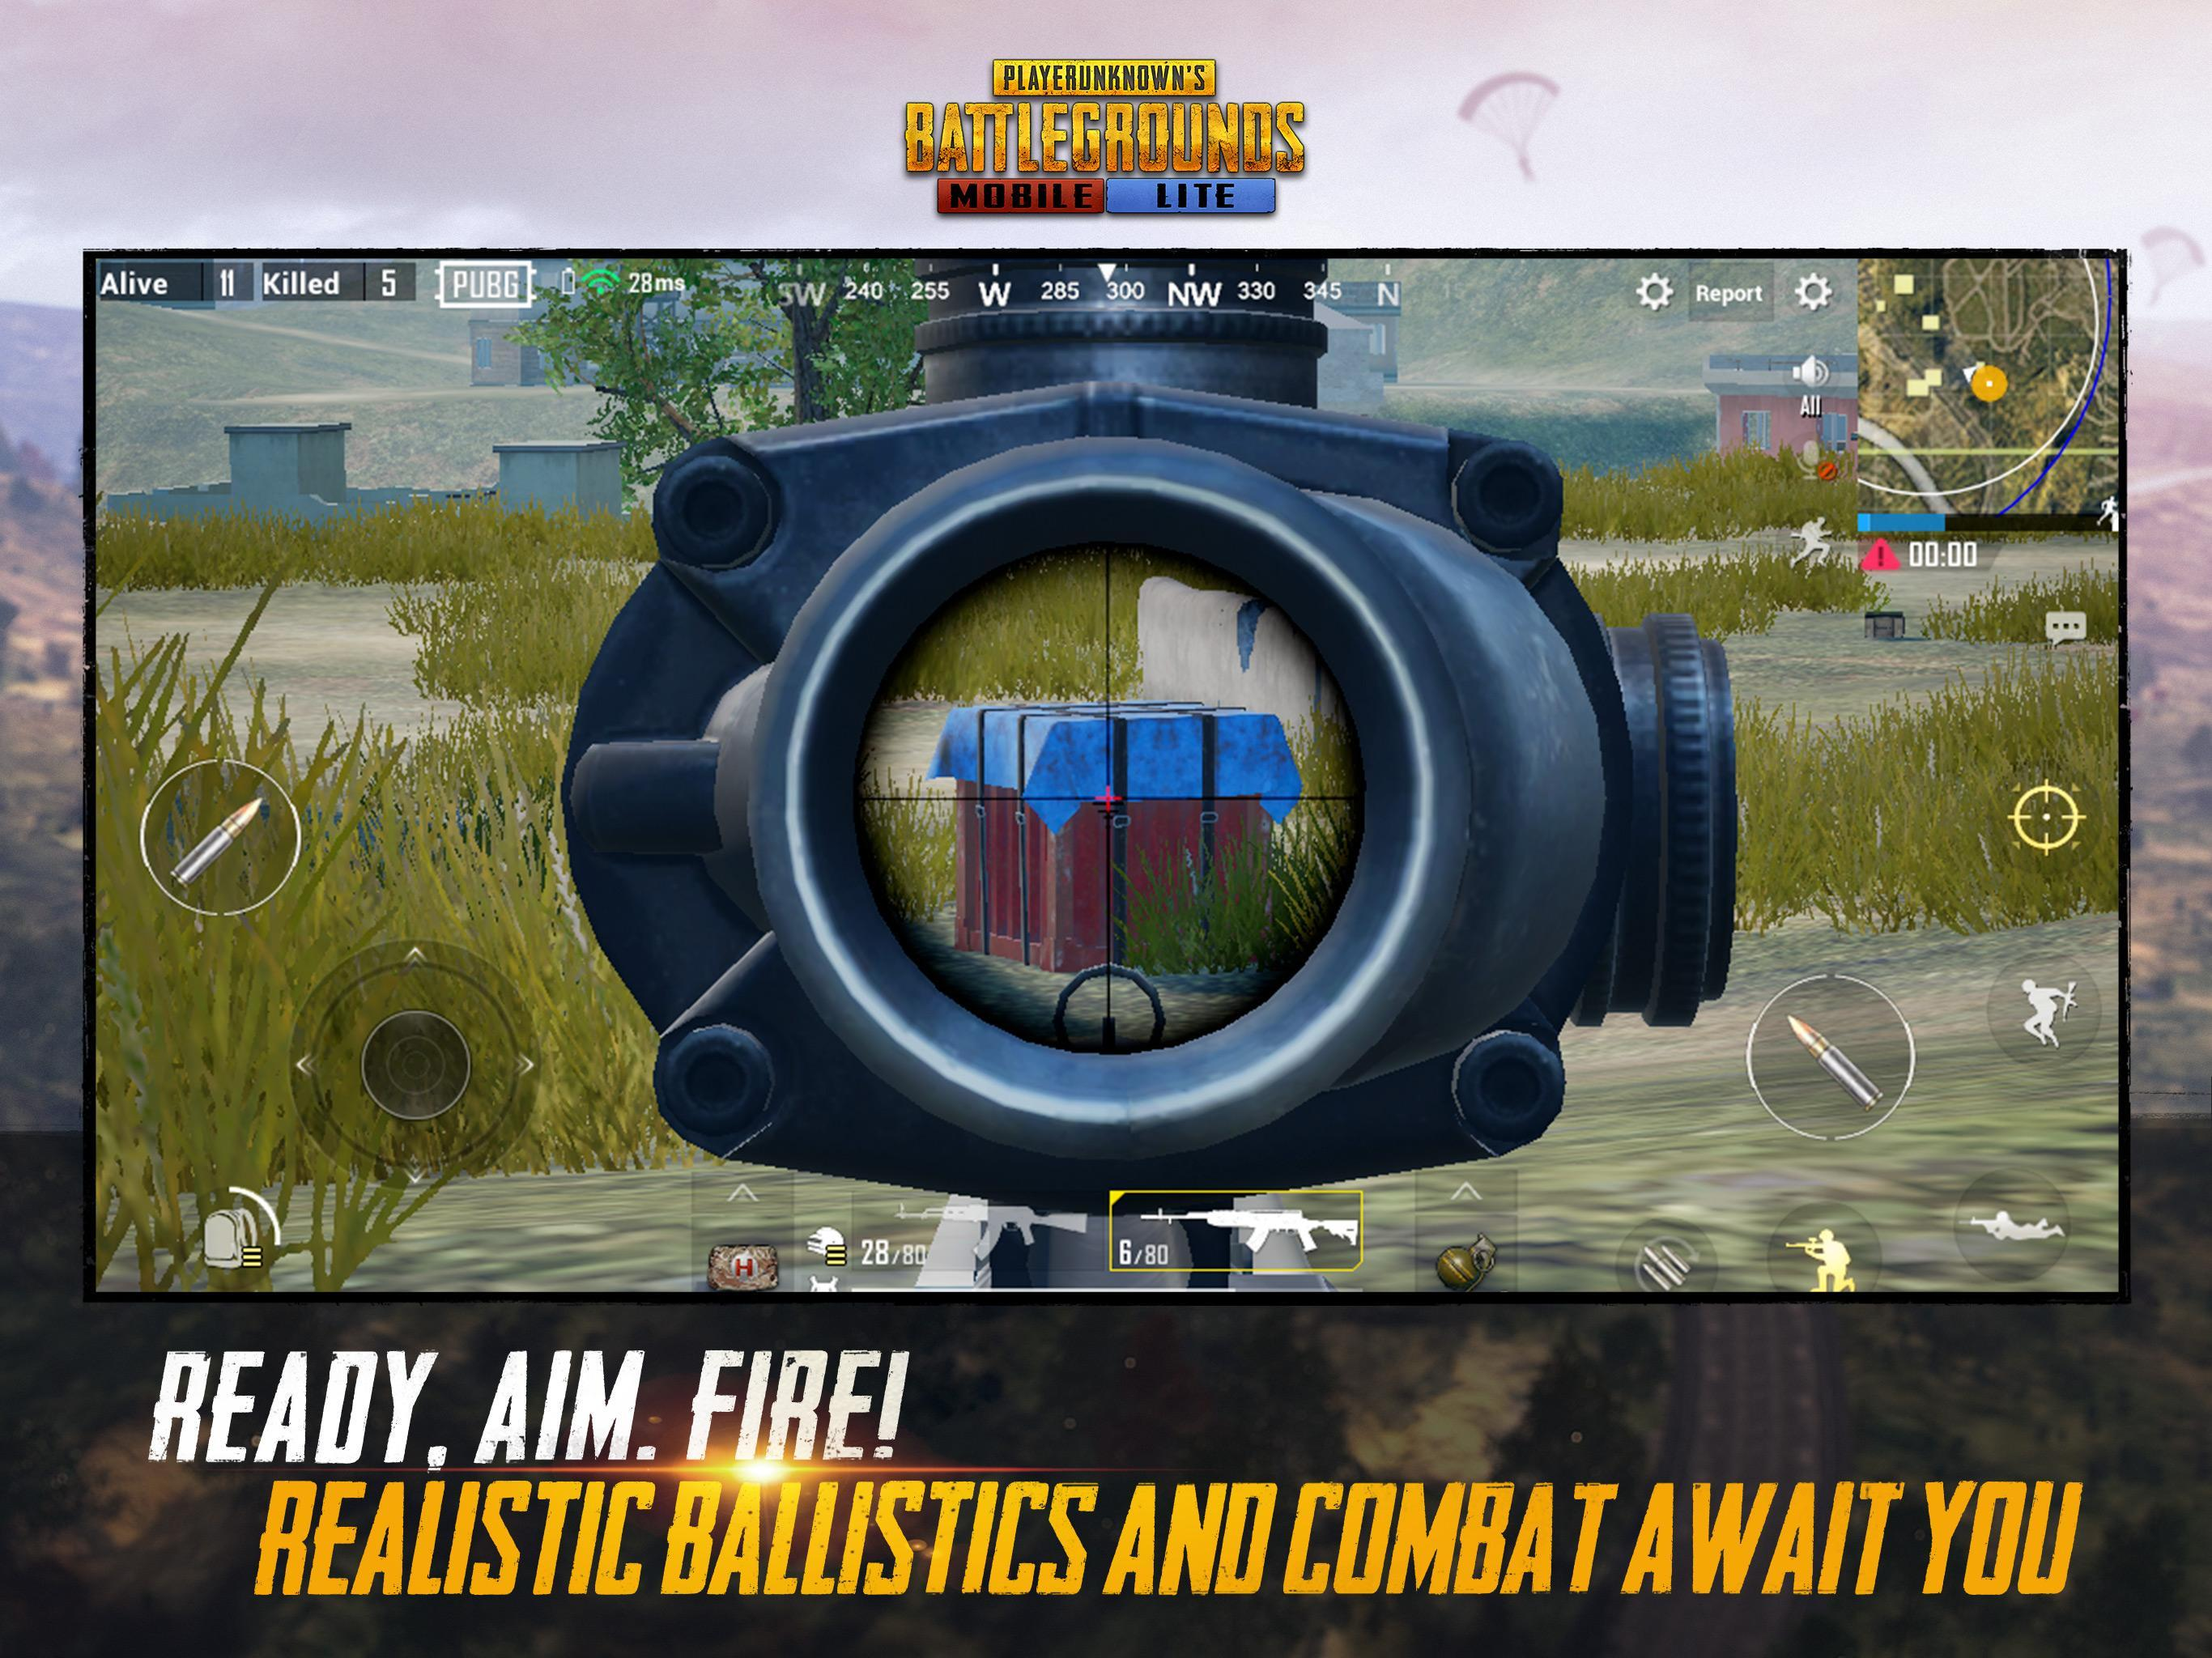 Pubg Mobile Lite For Android Apk Download - pubg mobile lite screenshot 13